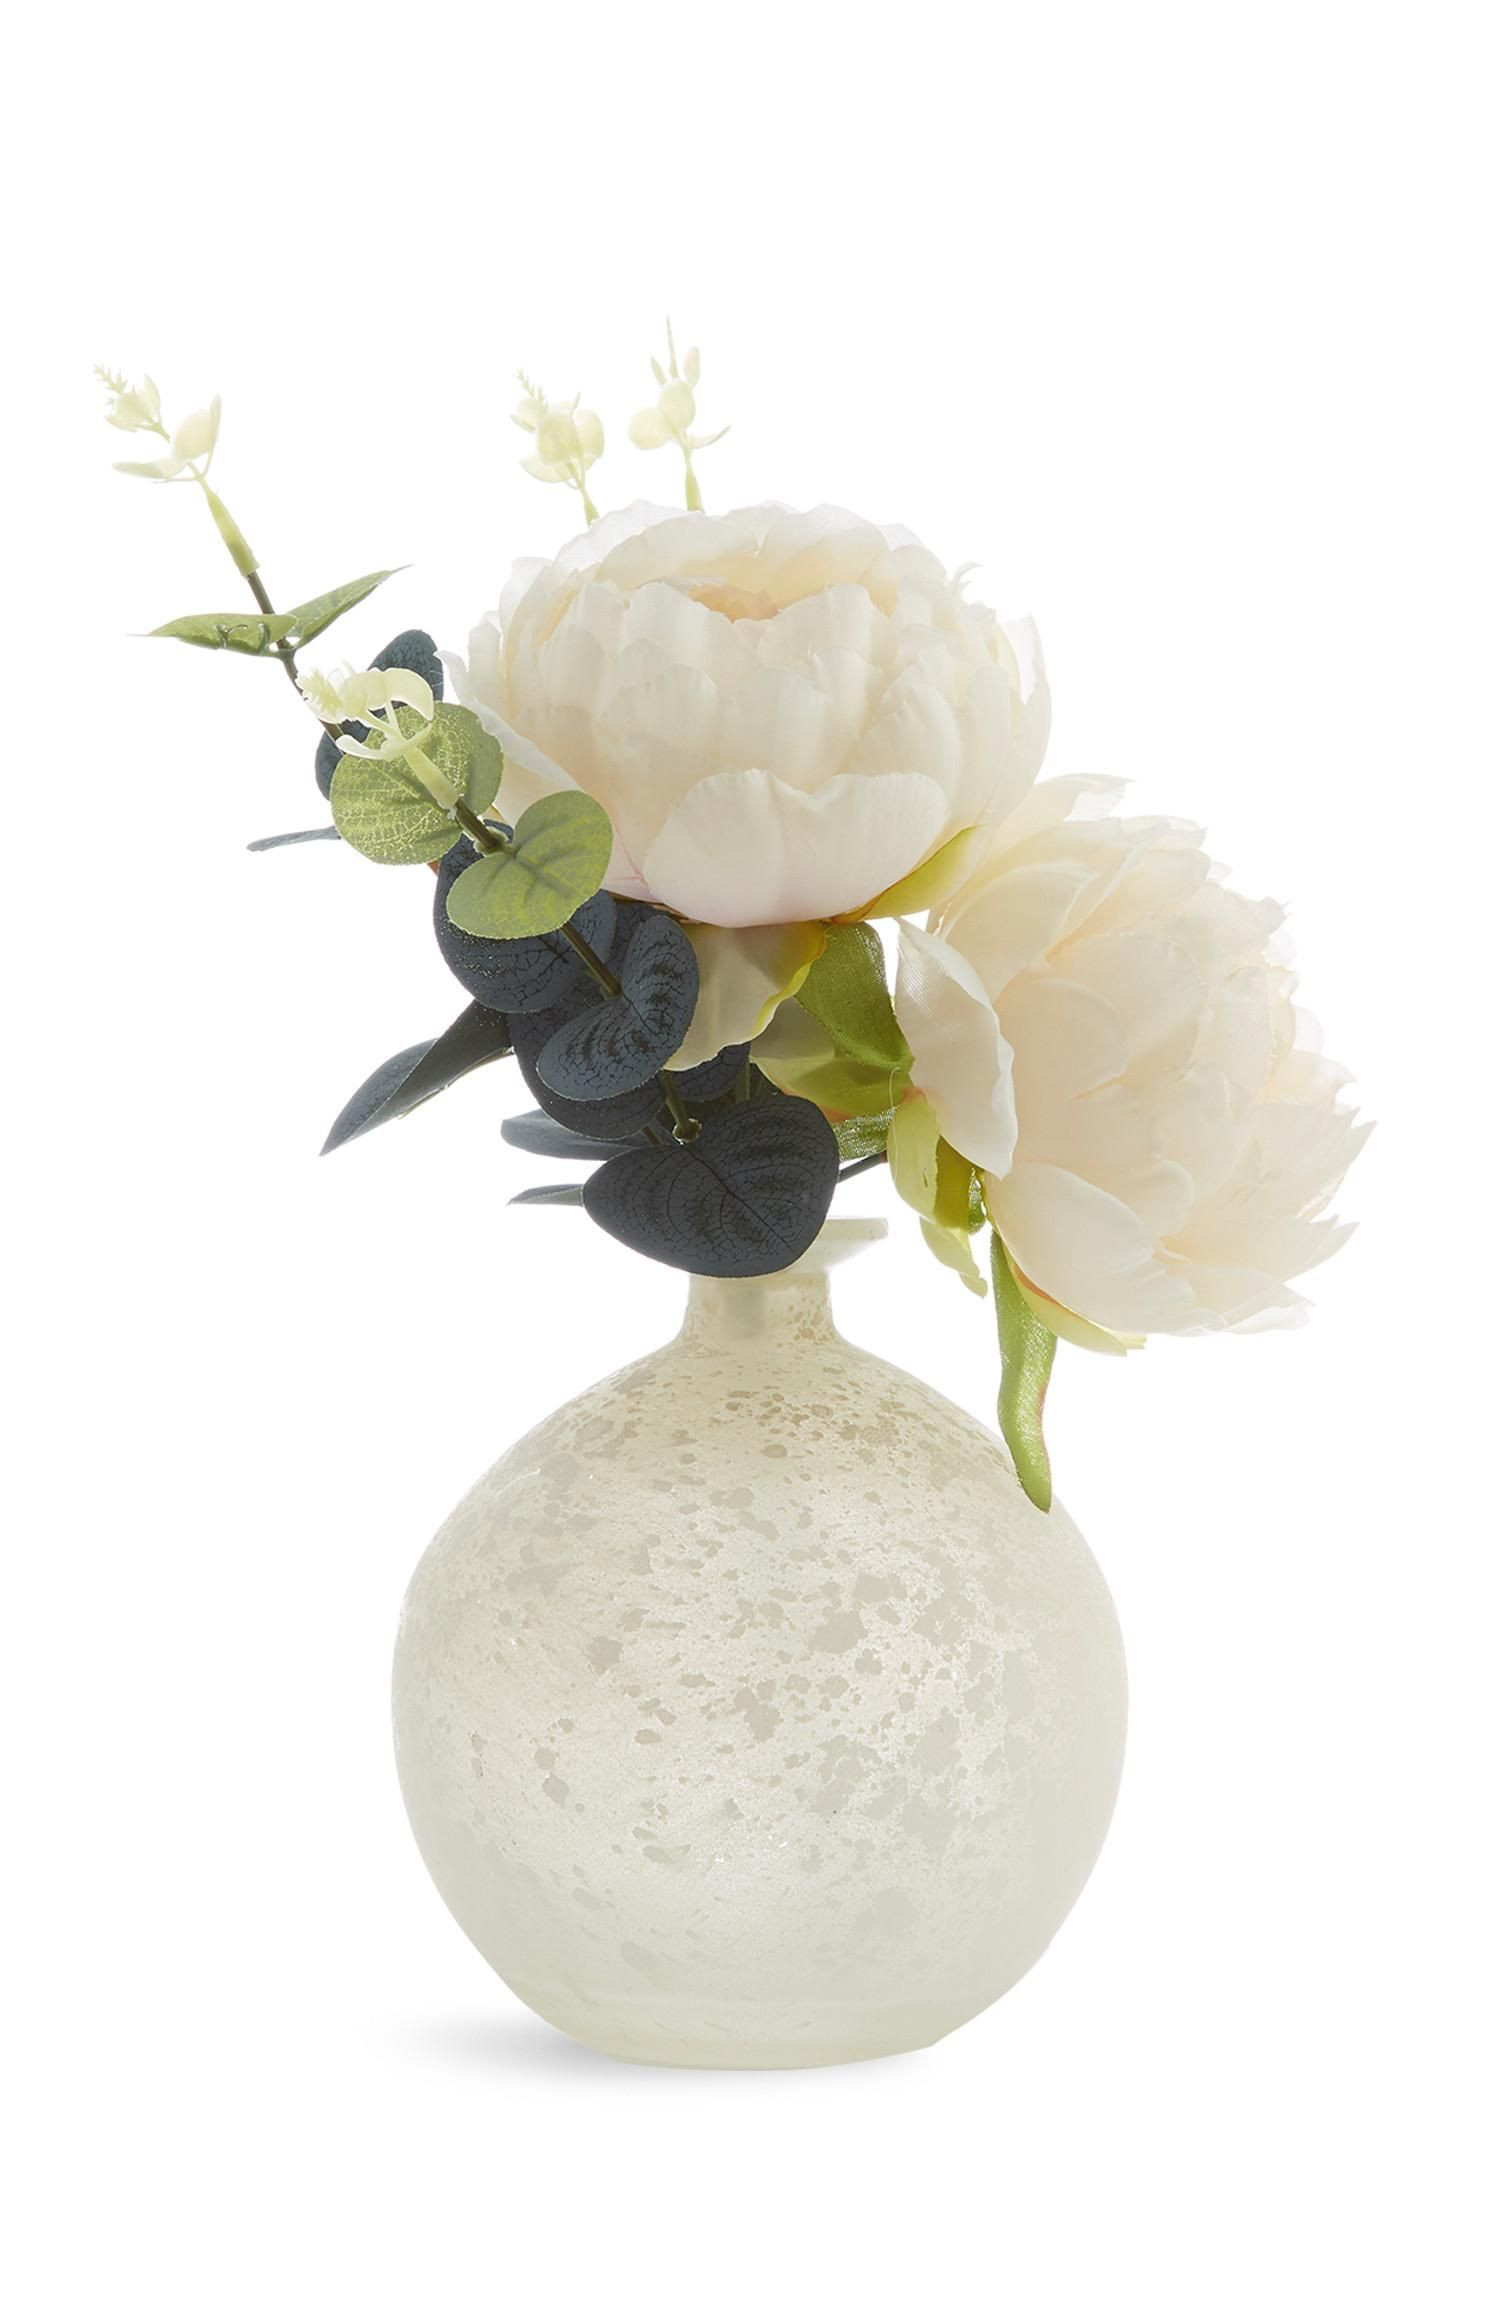 Frosted Globe Faux Flower Accessories Homeware